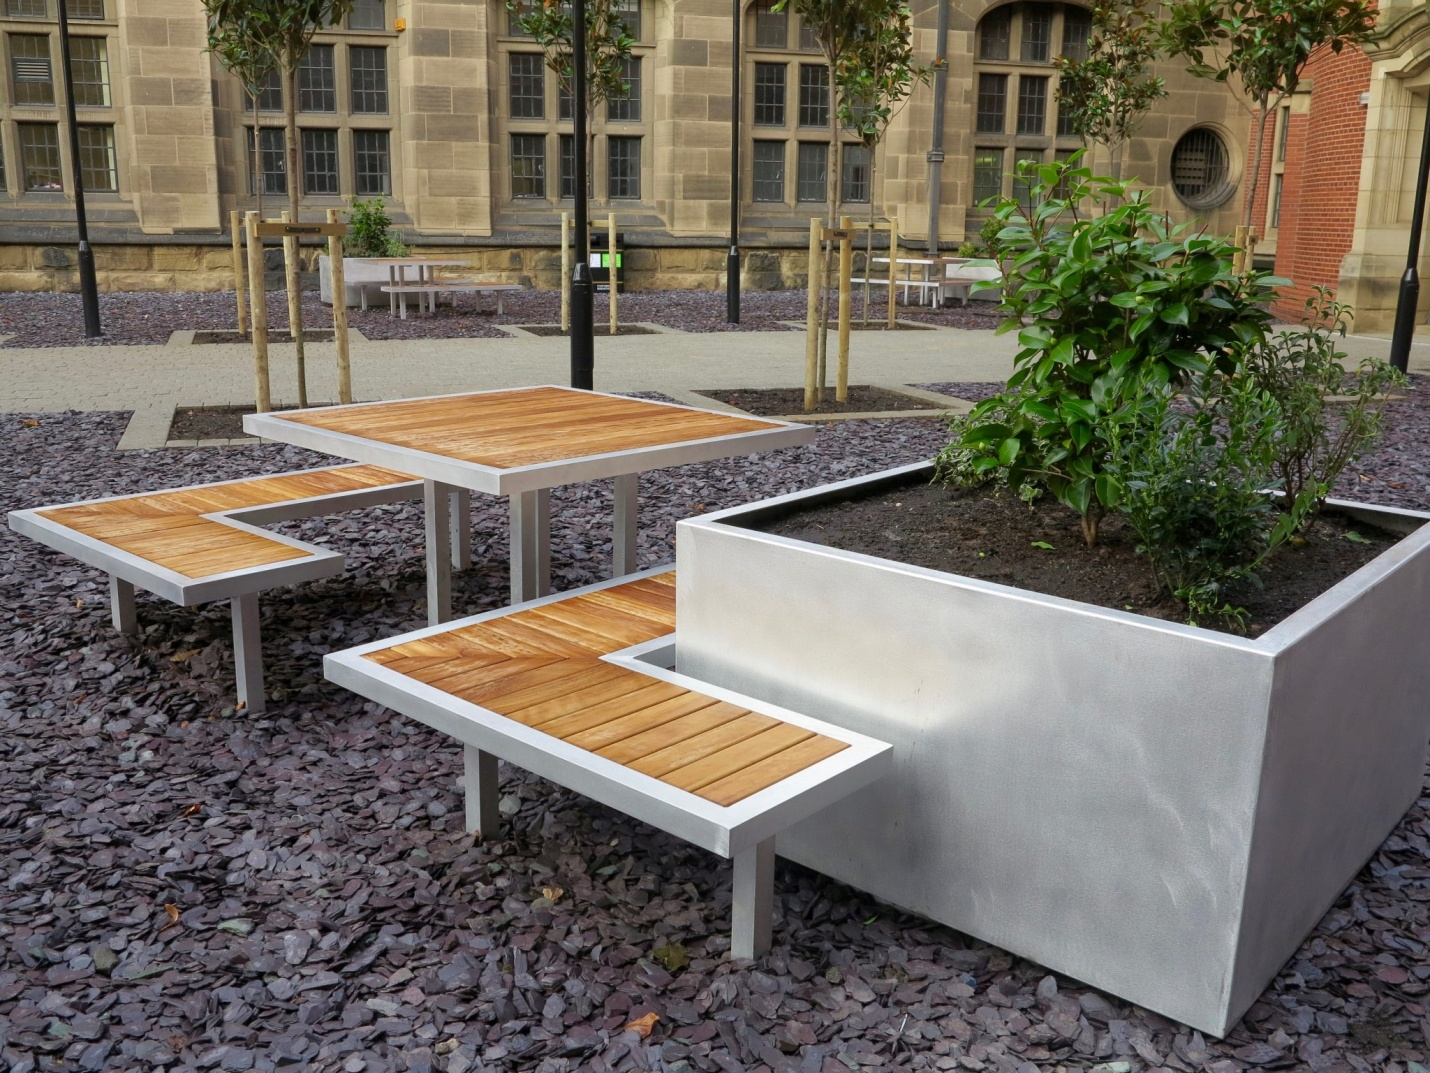 benchmark-design-Campus-range-street-furniture.jpg